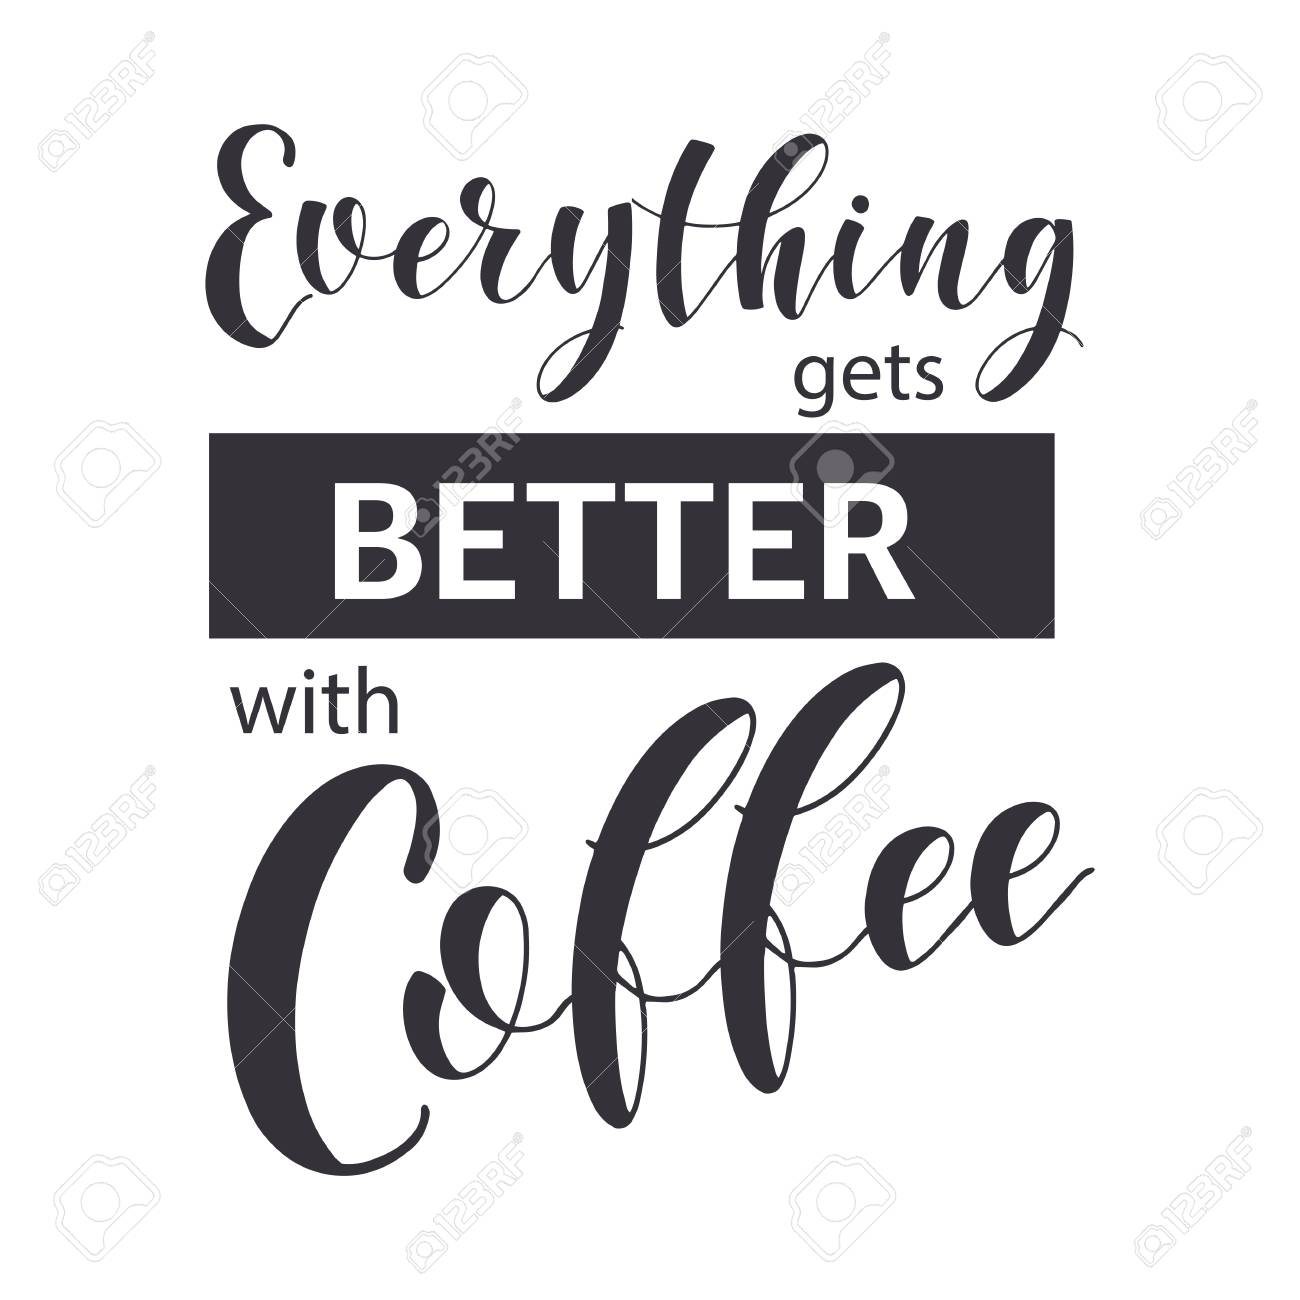 Coffee Quotes Everythinggets Better With Coffee Shop Promotion Royalty Free Cliparts Vectors And Stock Illustration Image 125644588